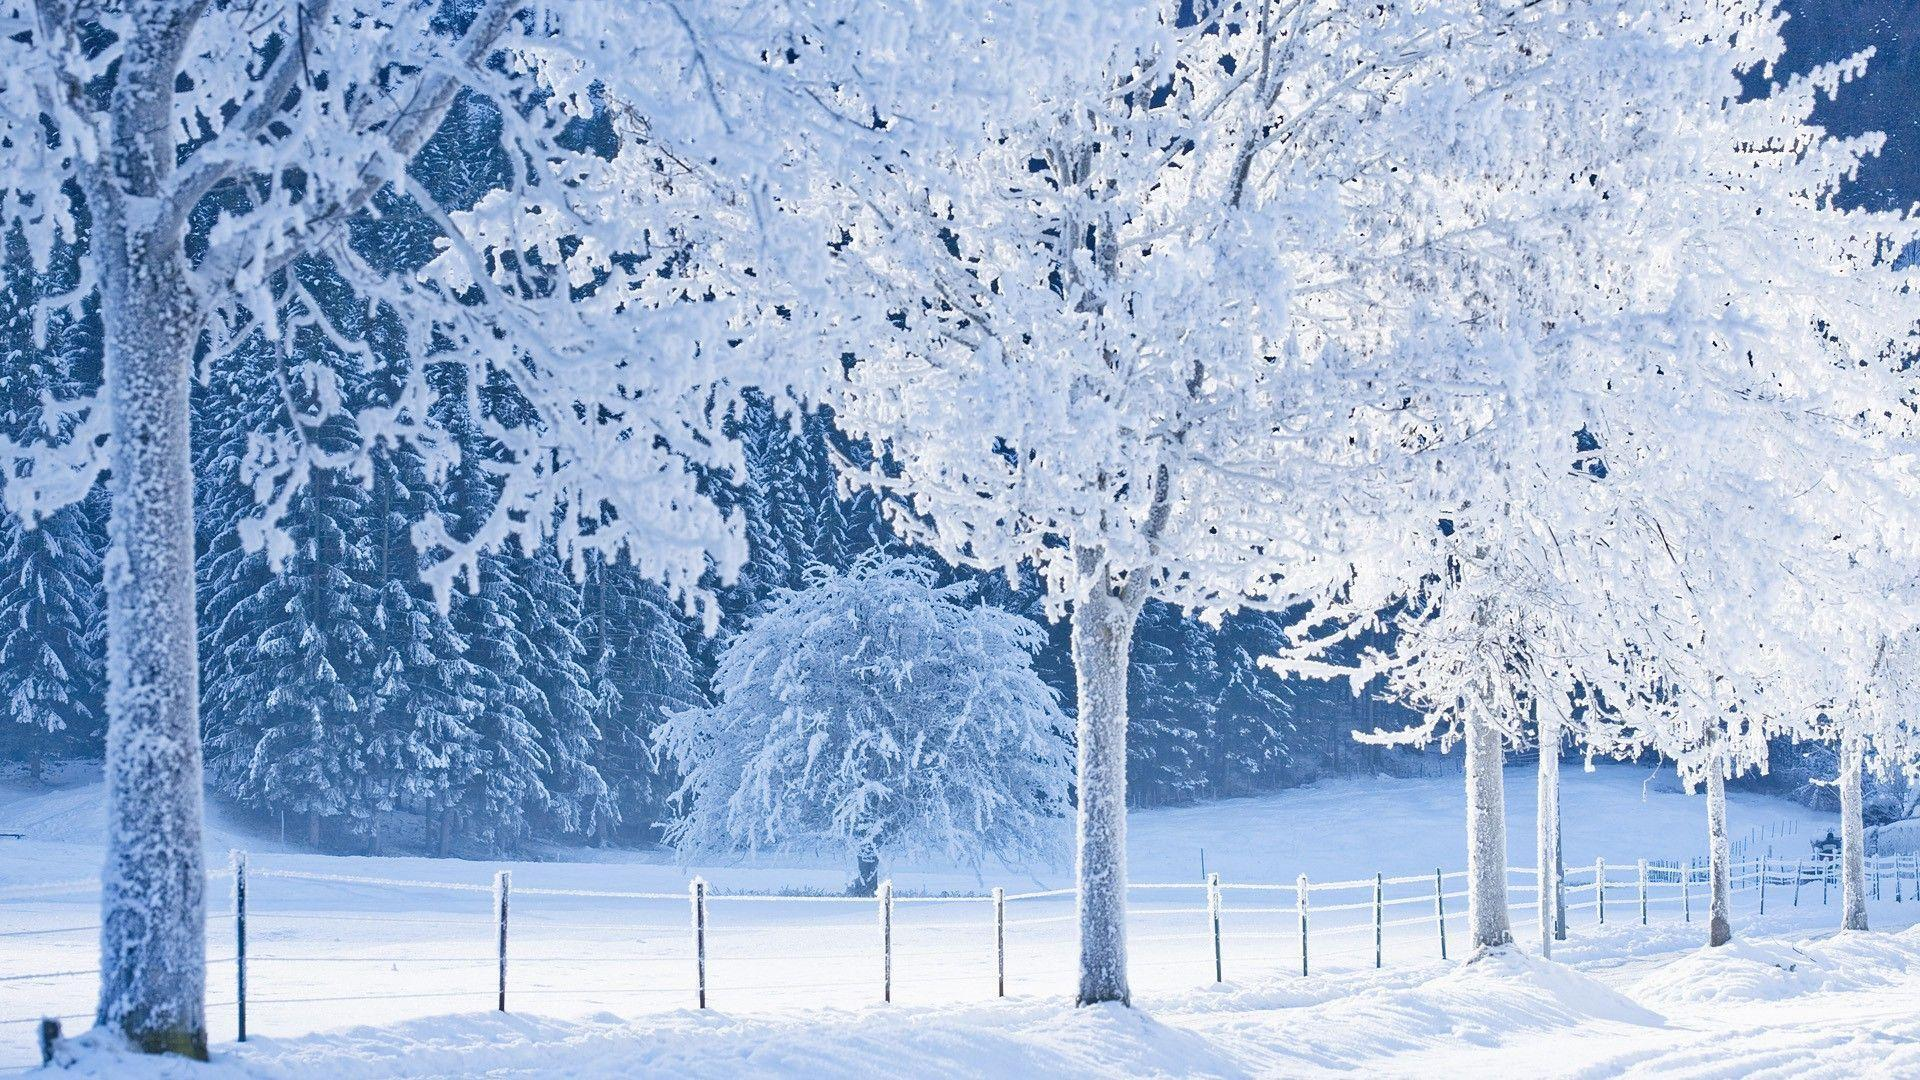 Real Snowy Backgrounds Wallpaper Hd